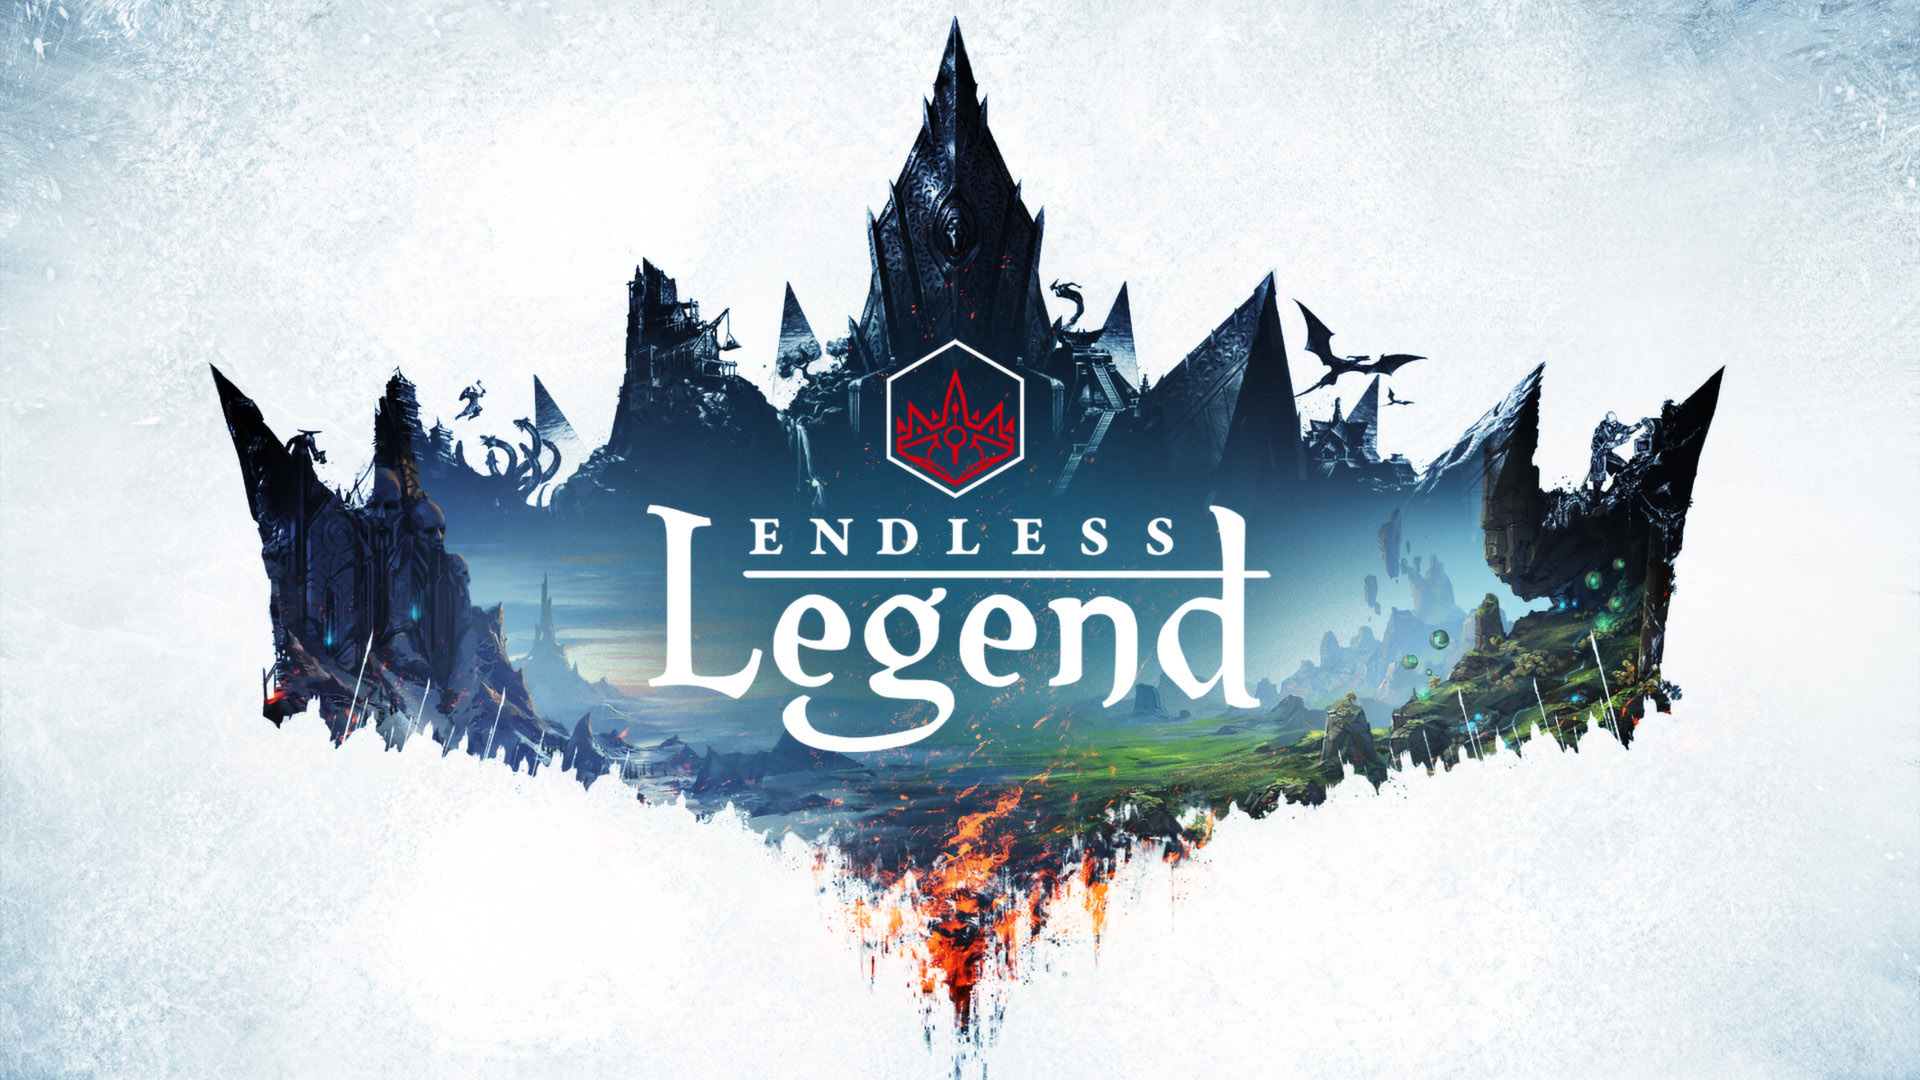 Endless Legend - Classic Pack (Steam Gift RU) + Подарок